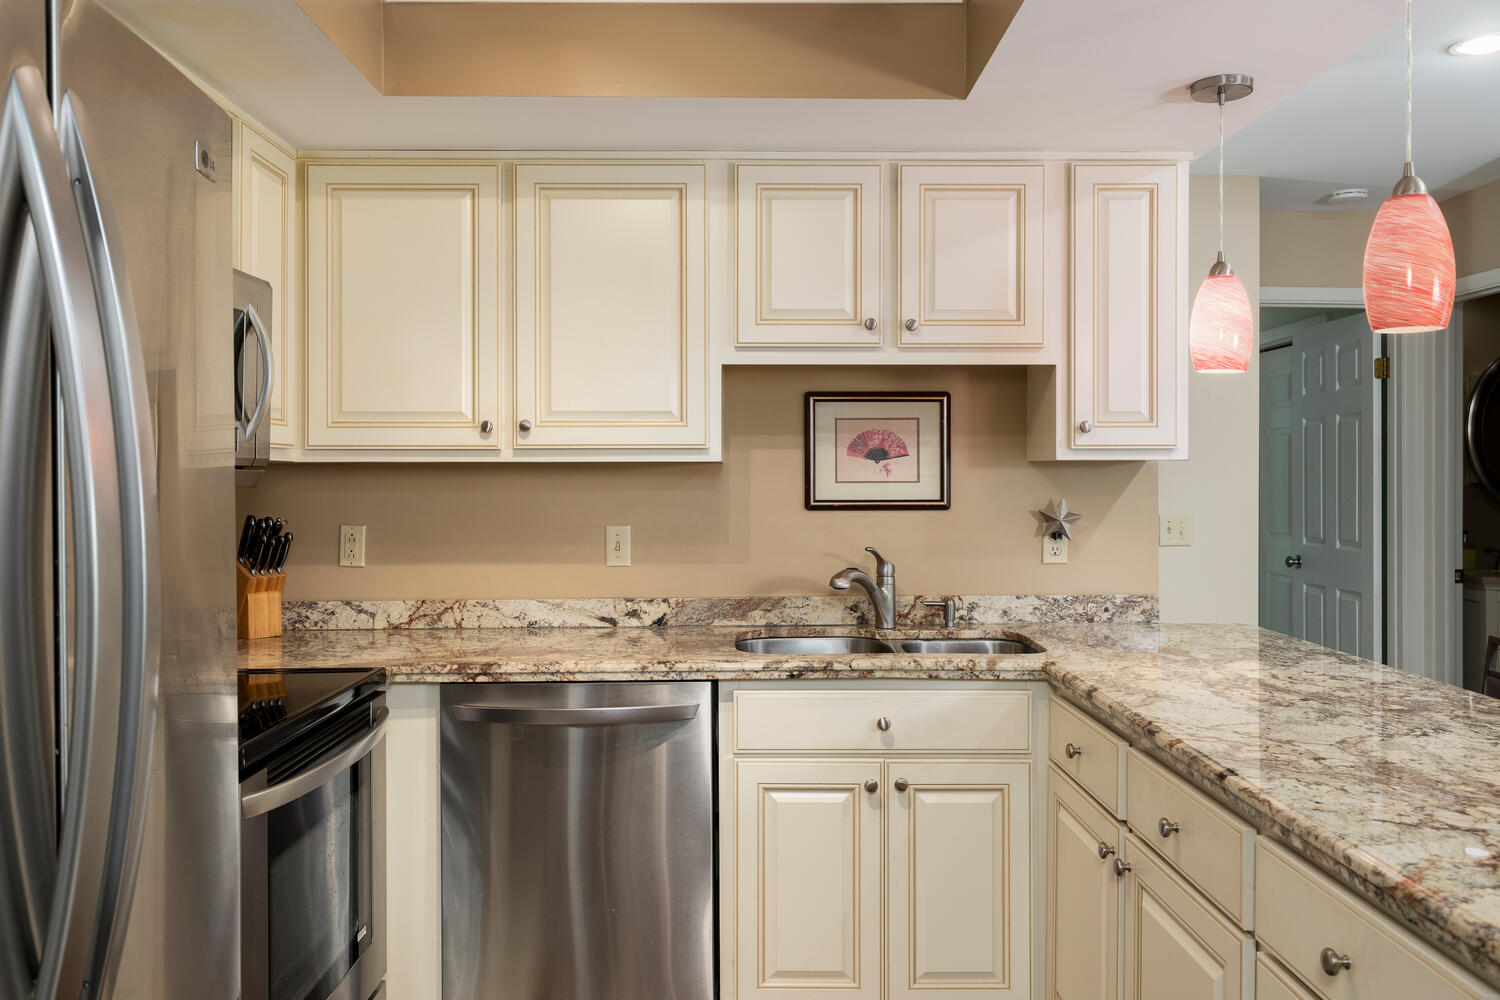 1205 Youngs Rd Unit APT F-large-008-011-Kitchen-1500×1000-72dpi